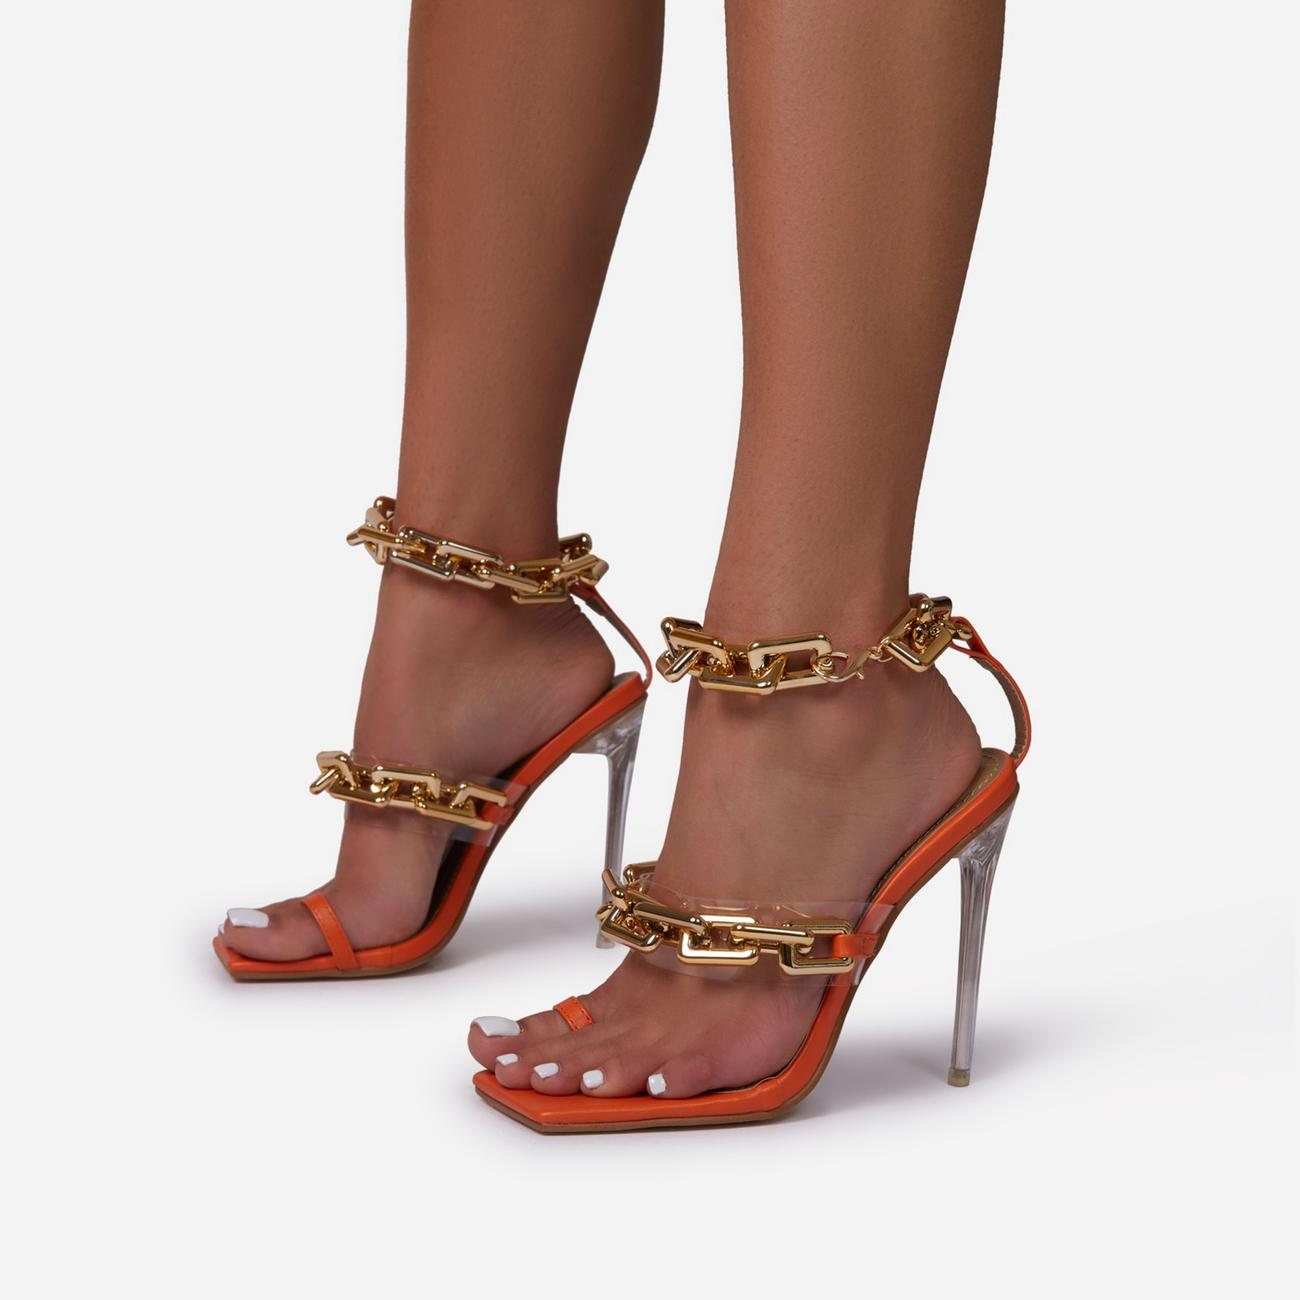 Morgana Triple Strap Chain Detail Square Toe Clear Perspex Heel In Orange Faux Leather Image 2